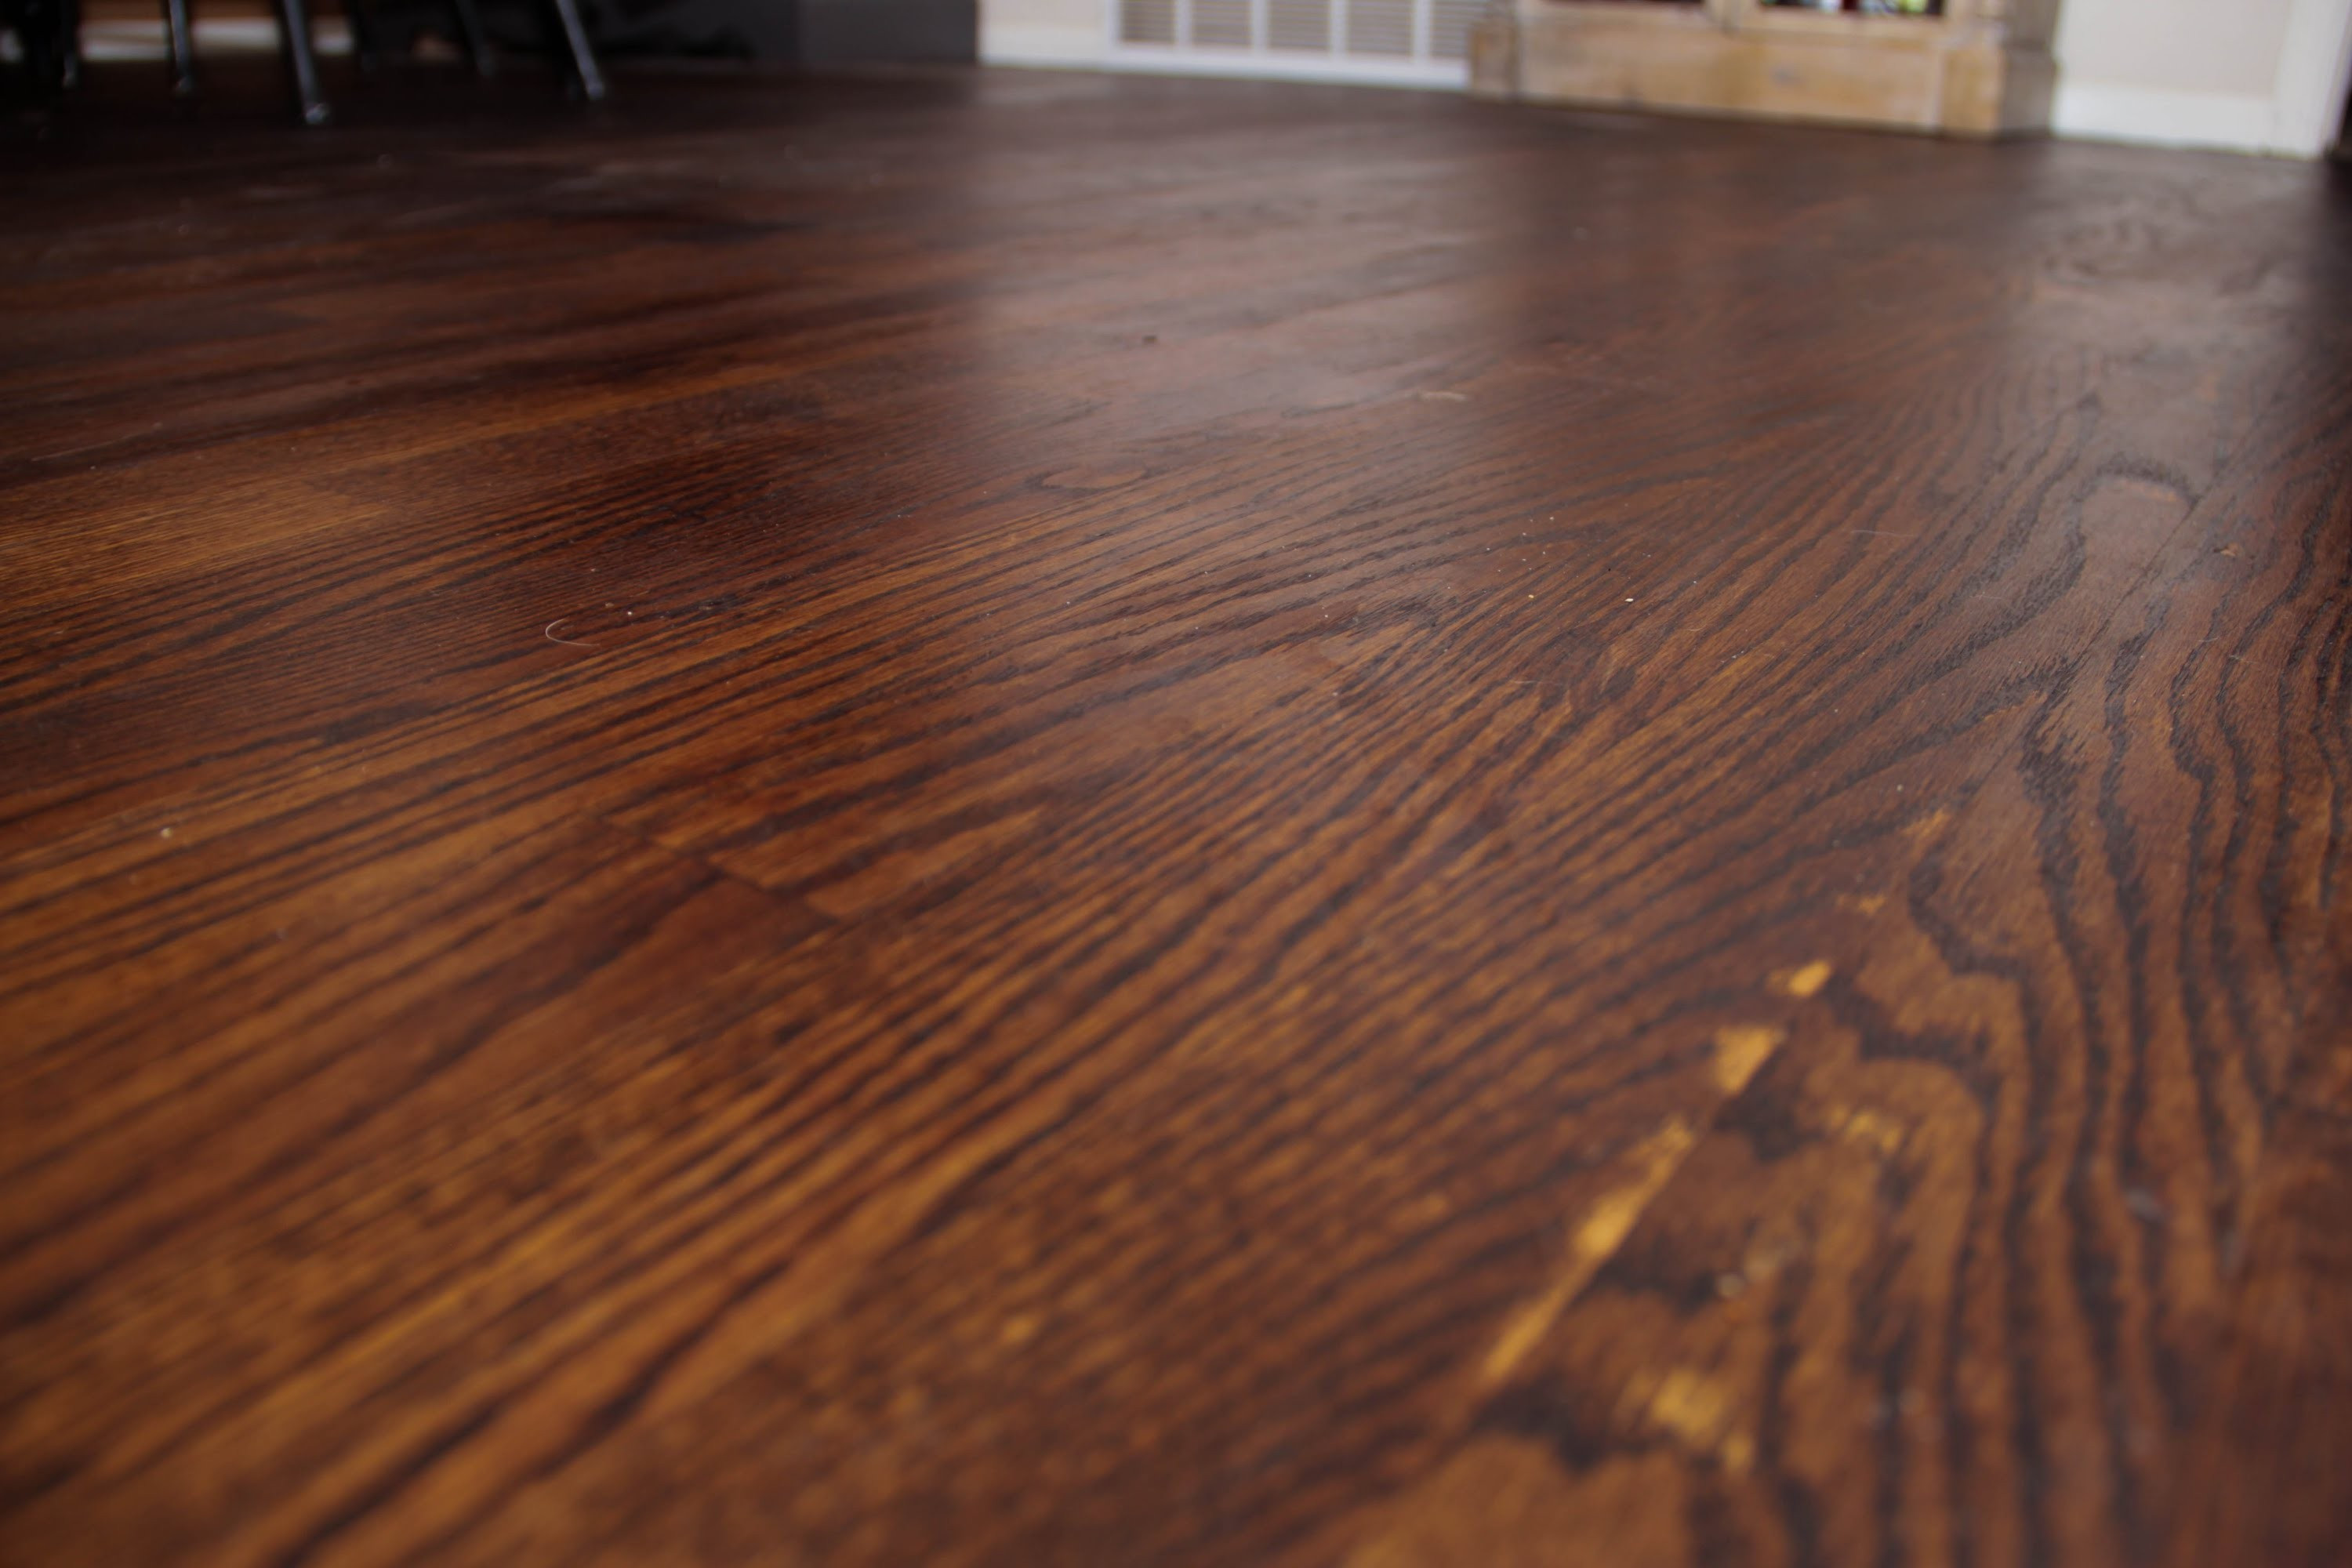 resurfacing hardwood floors without sanding of maxresdefault how much to resurface hardwood floors sesa build com for maxresdefault how much to resurface hardwood floors